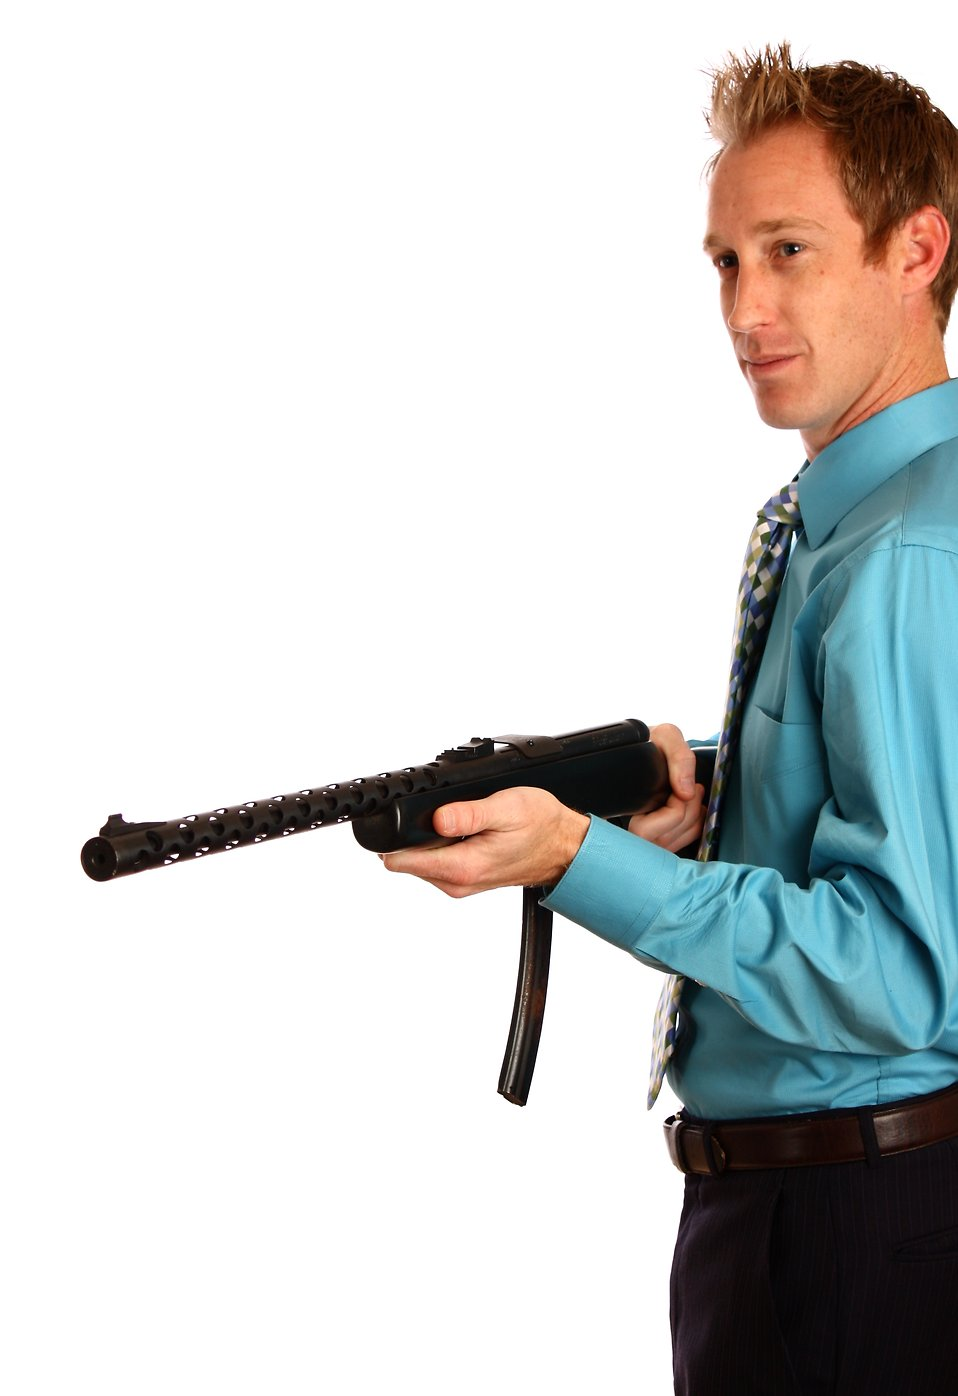 A young businessman holding a rifle.